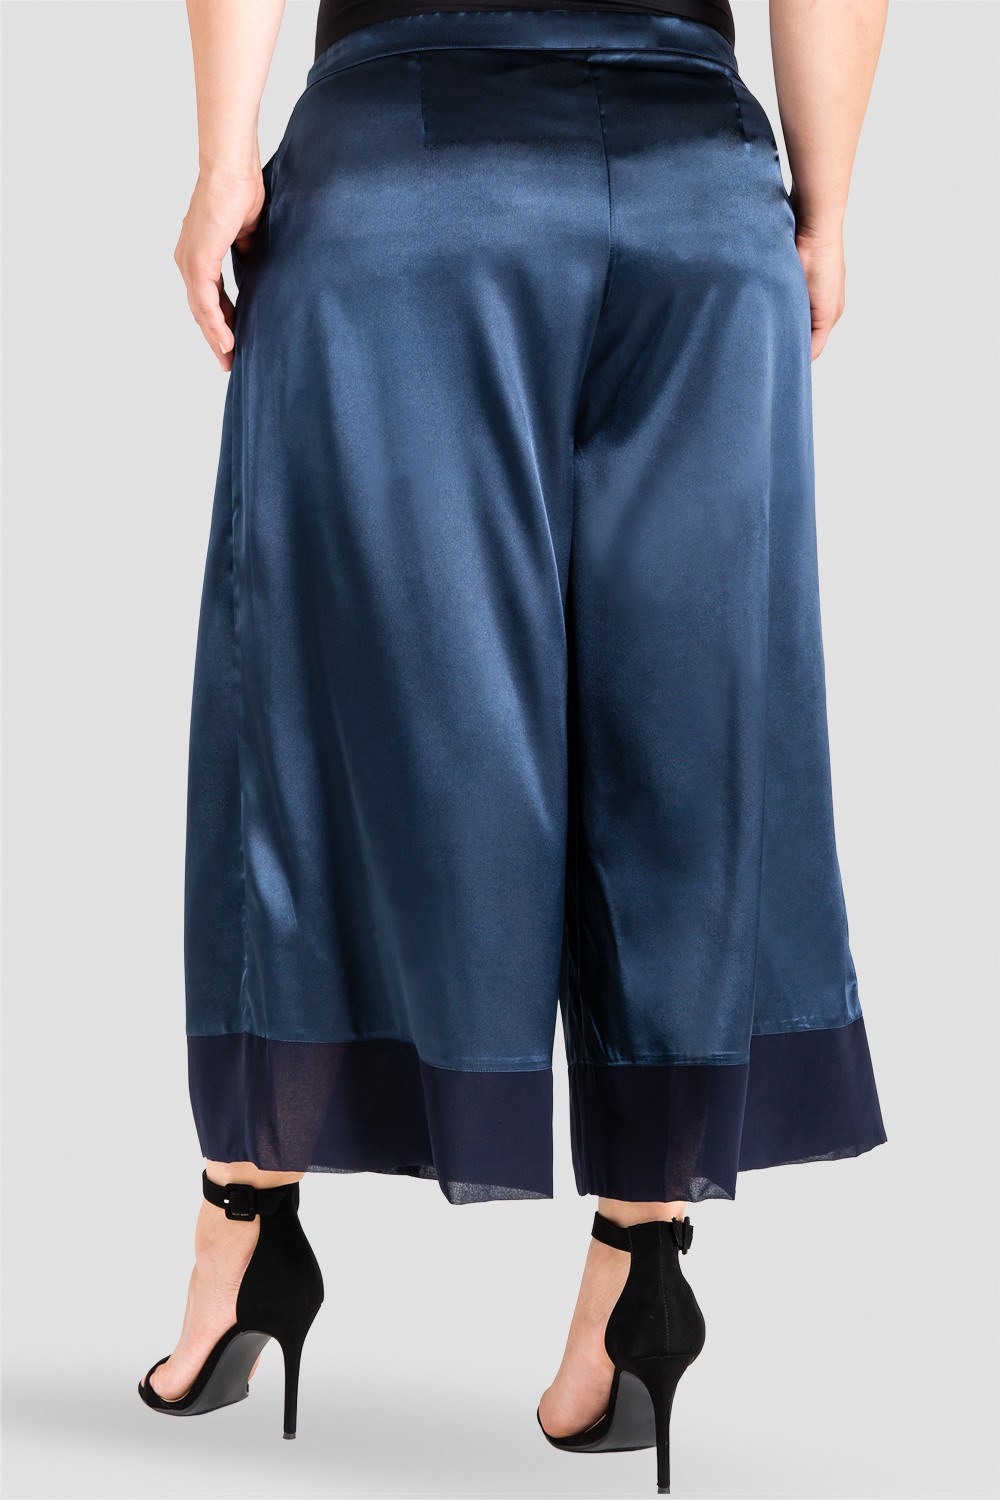 silky sateen pants midnight blue with sheer cuff